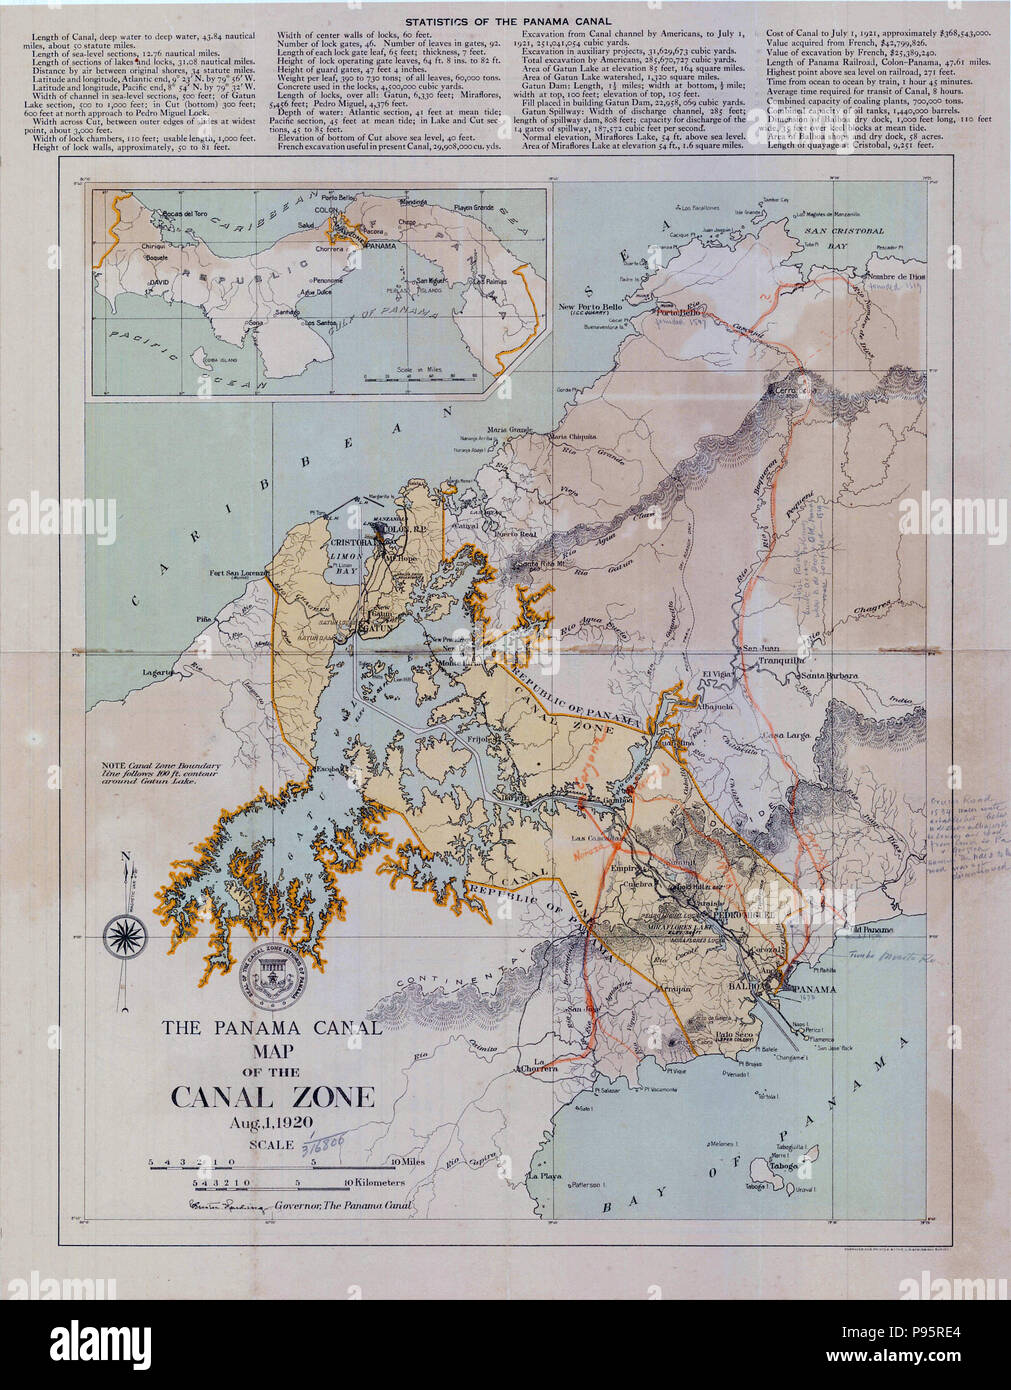 Map Of The Panama Canal Zone 1920 Stock Photo 212184508 Alamy